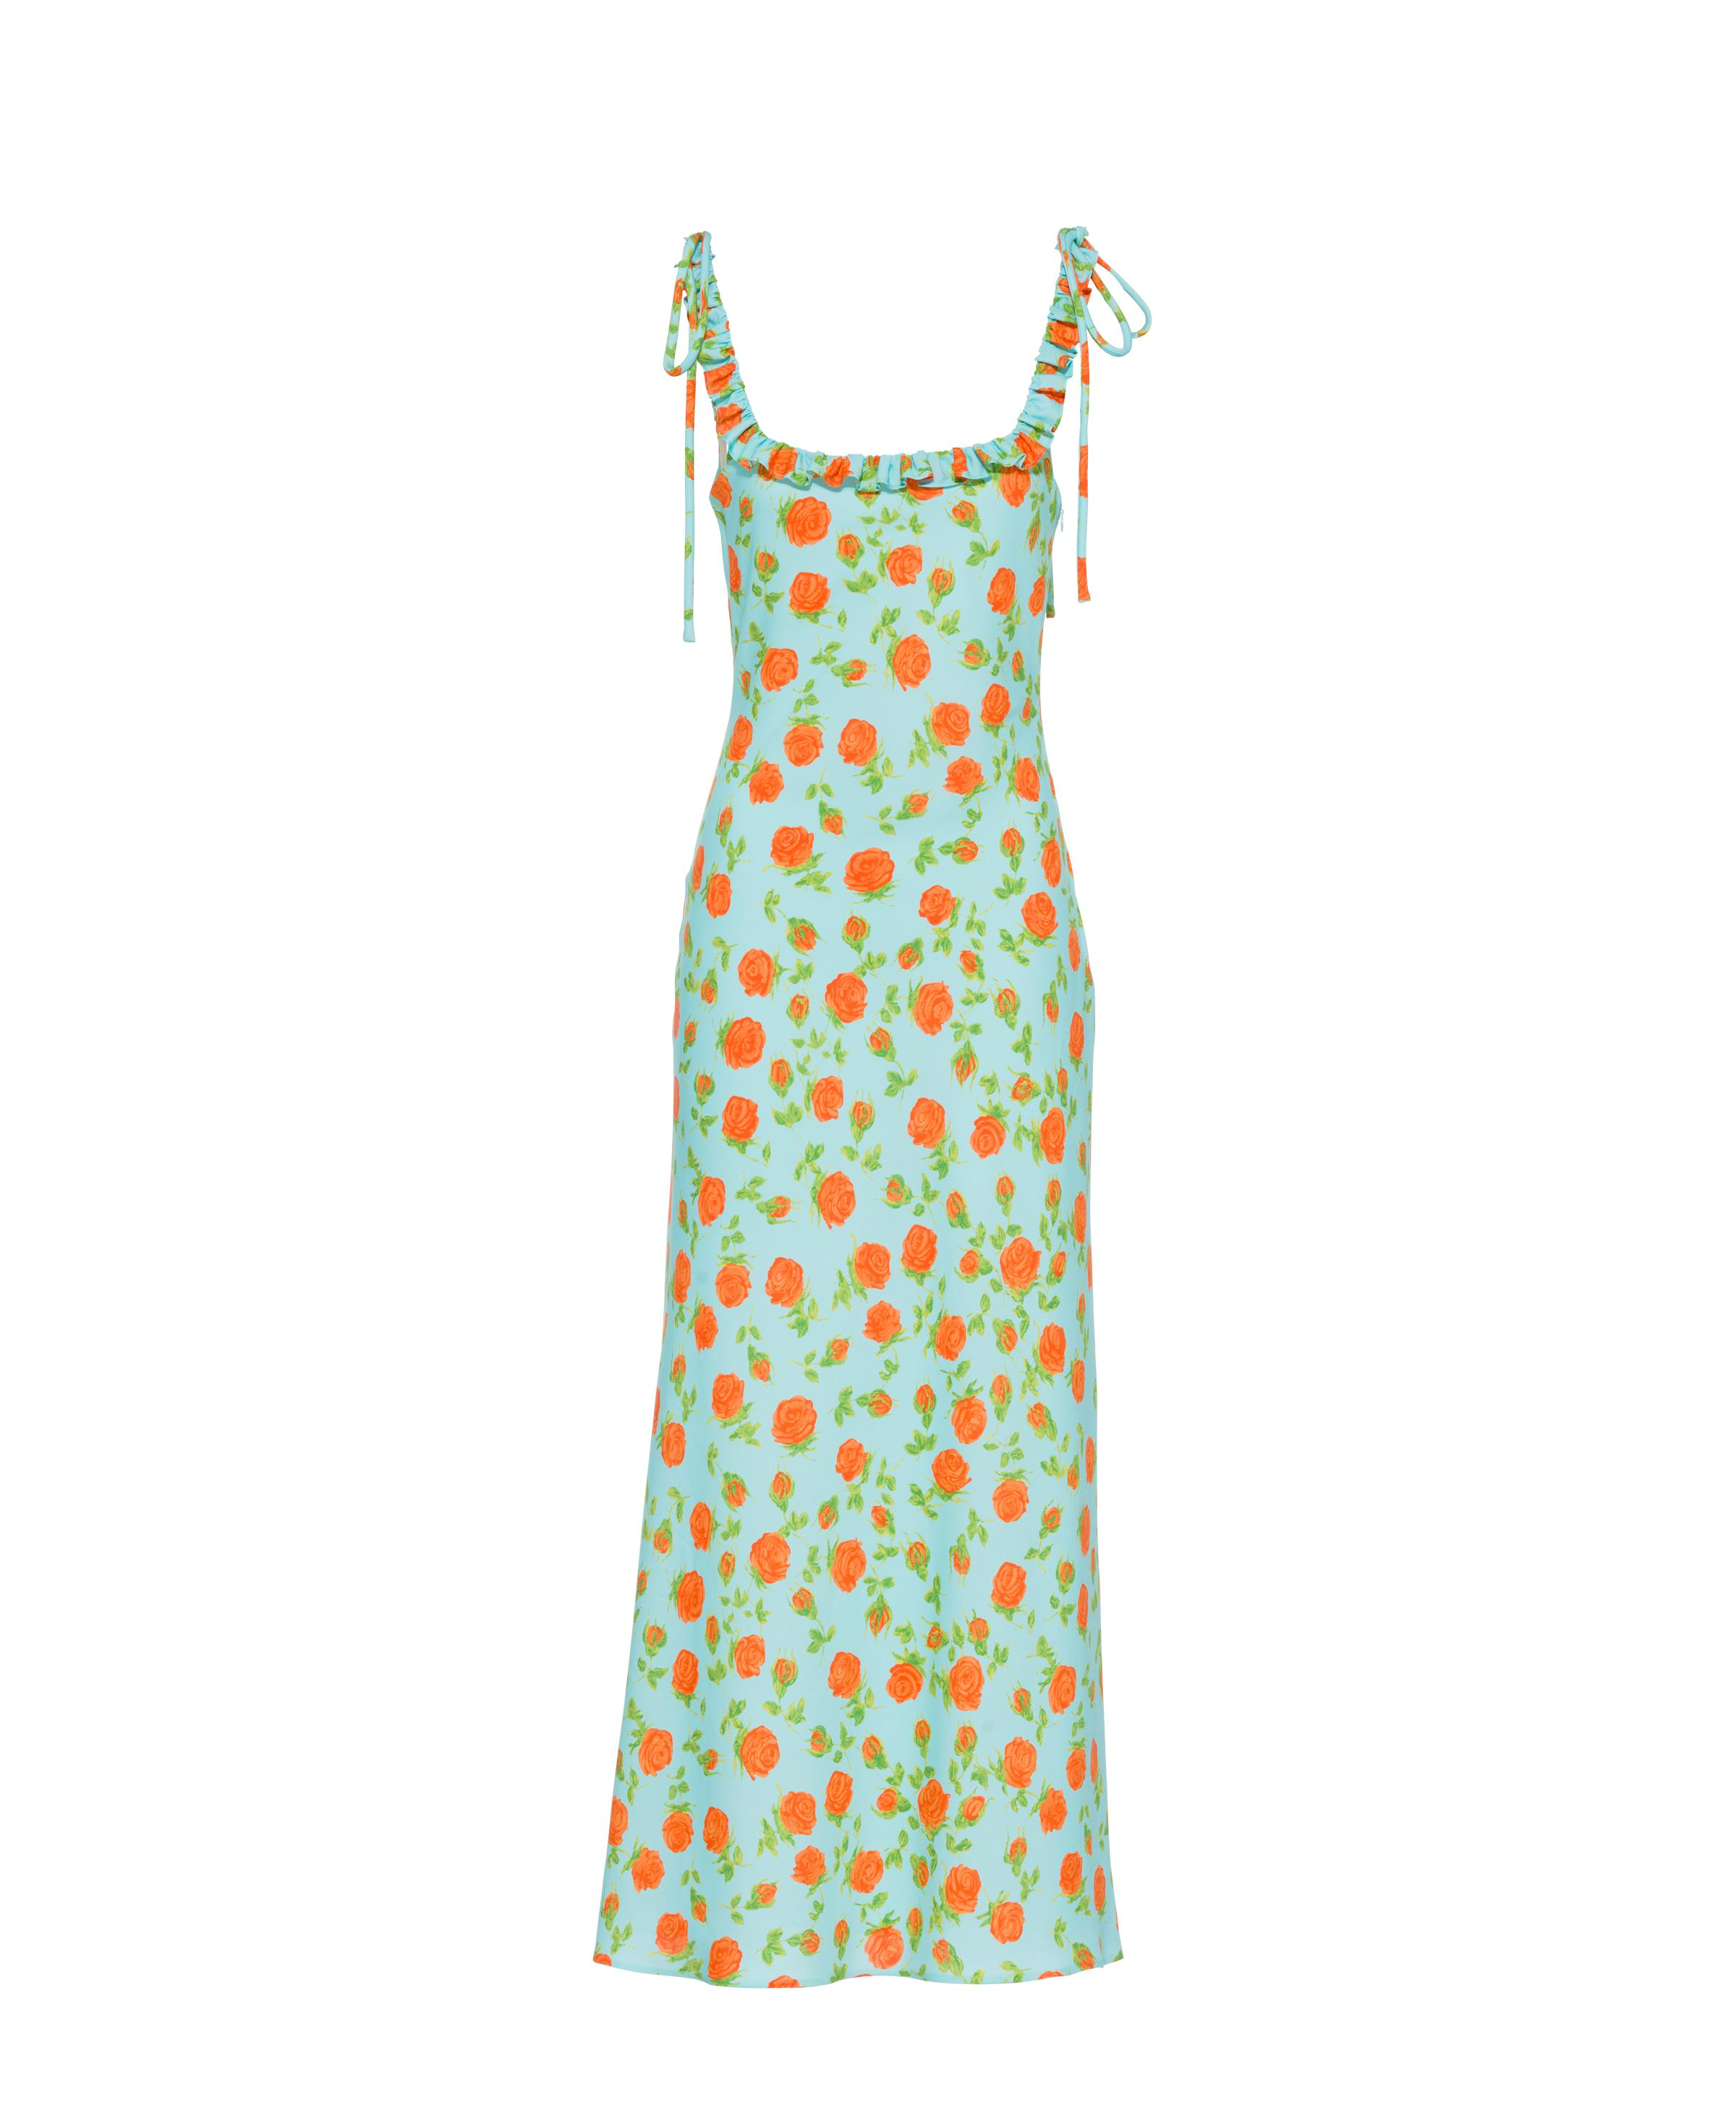 Printed Georgette Dress Women Turquoise